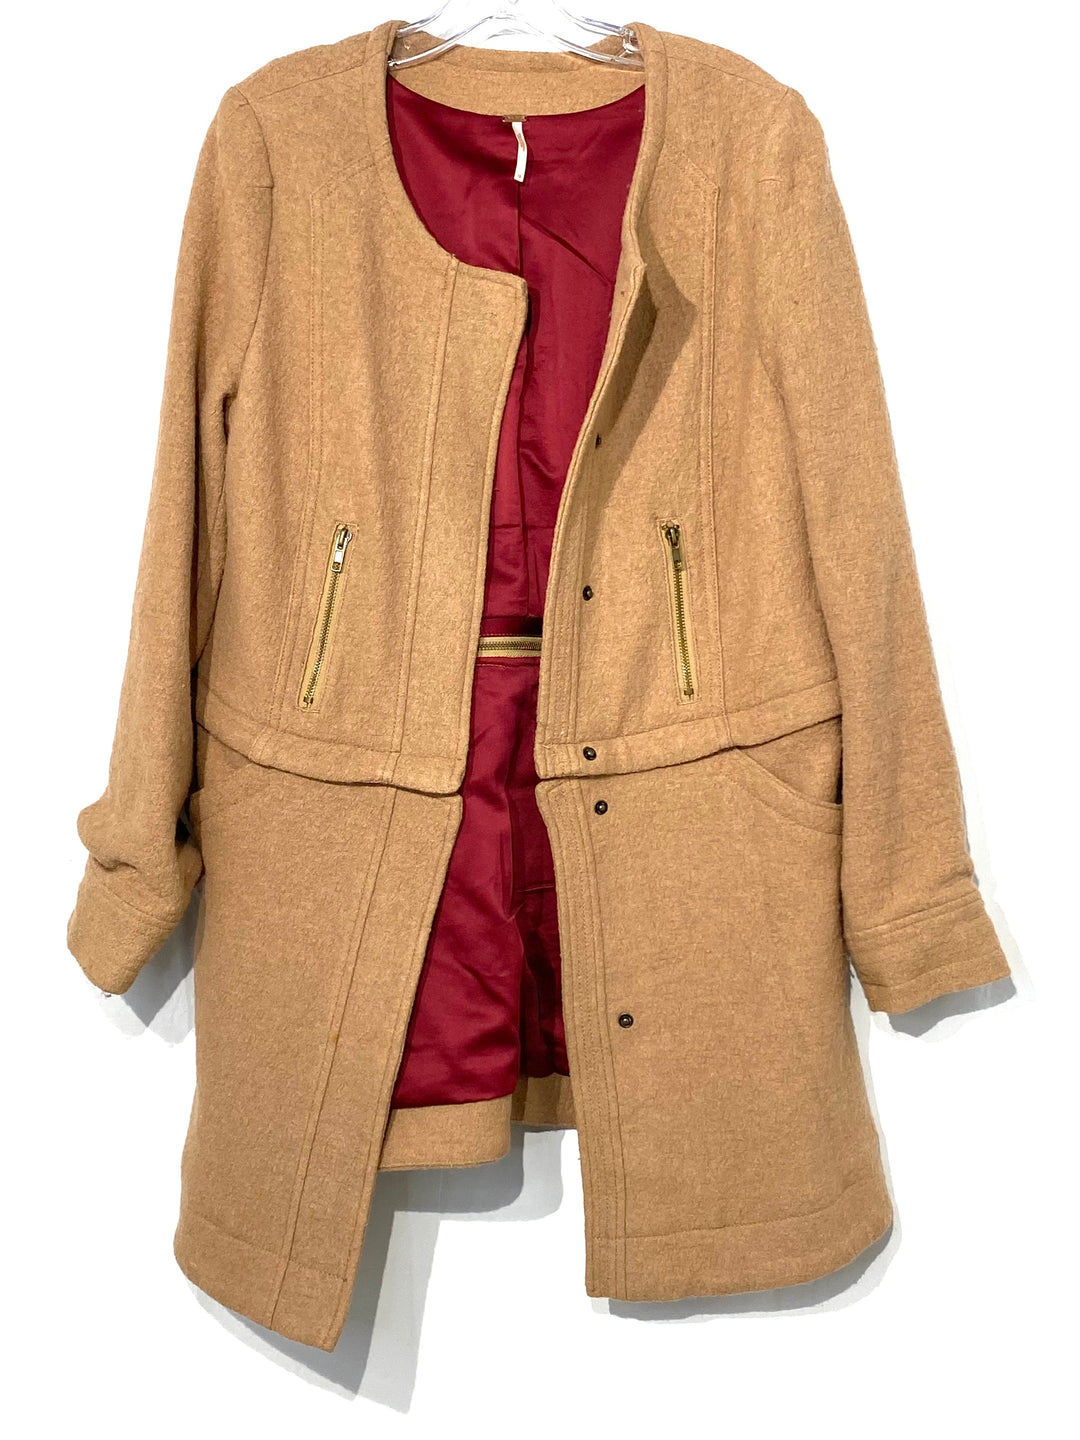 Primary Photo - BRAND: FREE PEOPLE <BR>STYLE: JACKET OUTDOOR <BR>COLOR: BEIGE <BR>SIZE: M <BR>SKU: 262-262100-271<BR>COAT THAT UNZIPS TO BE A SHORT JACKET